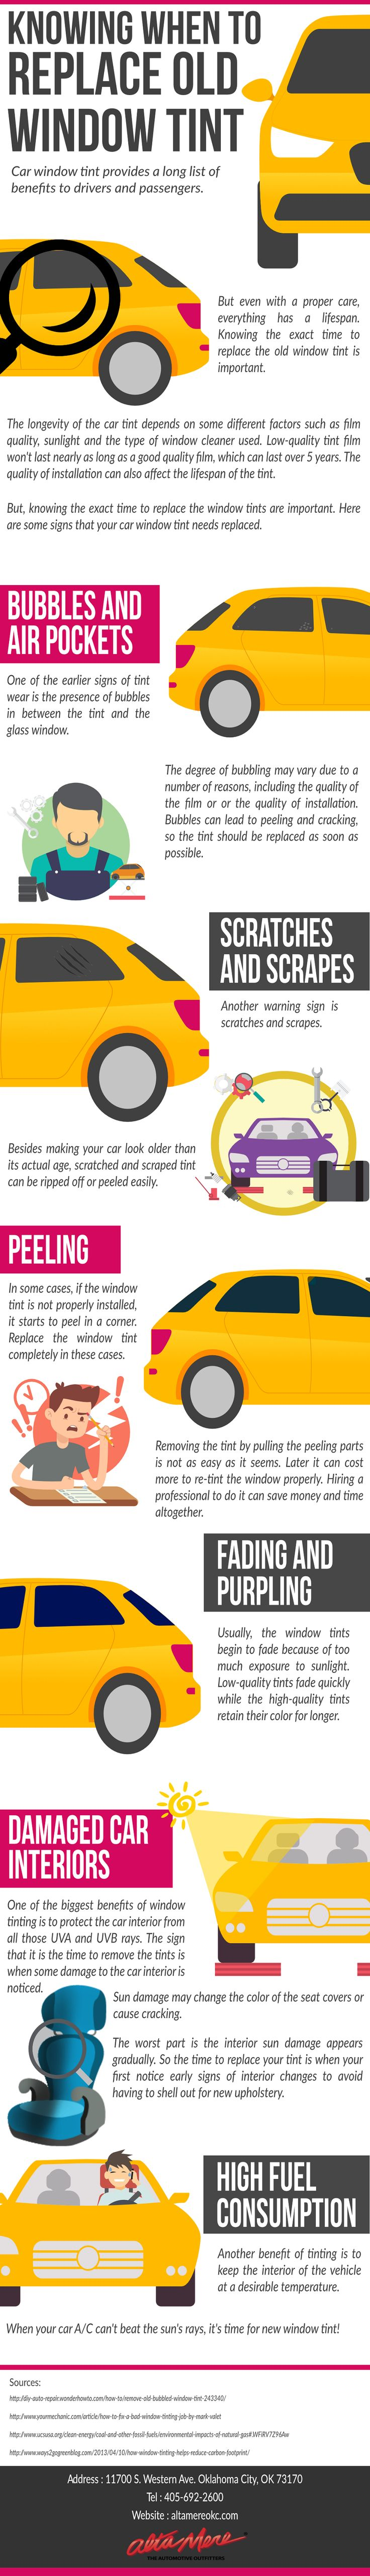 Find Out When You Should Replace Your Old Window Tint #infographic http://bit.ly/2mvUxoF